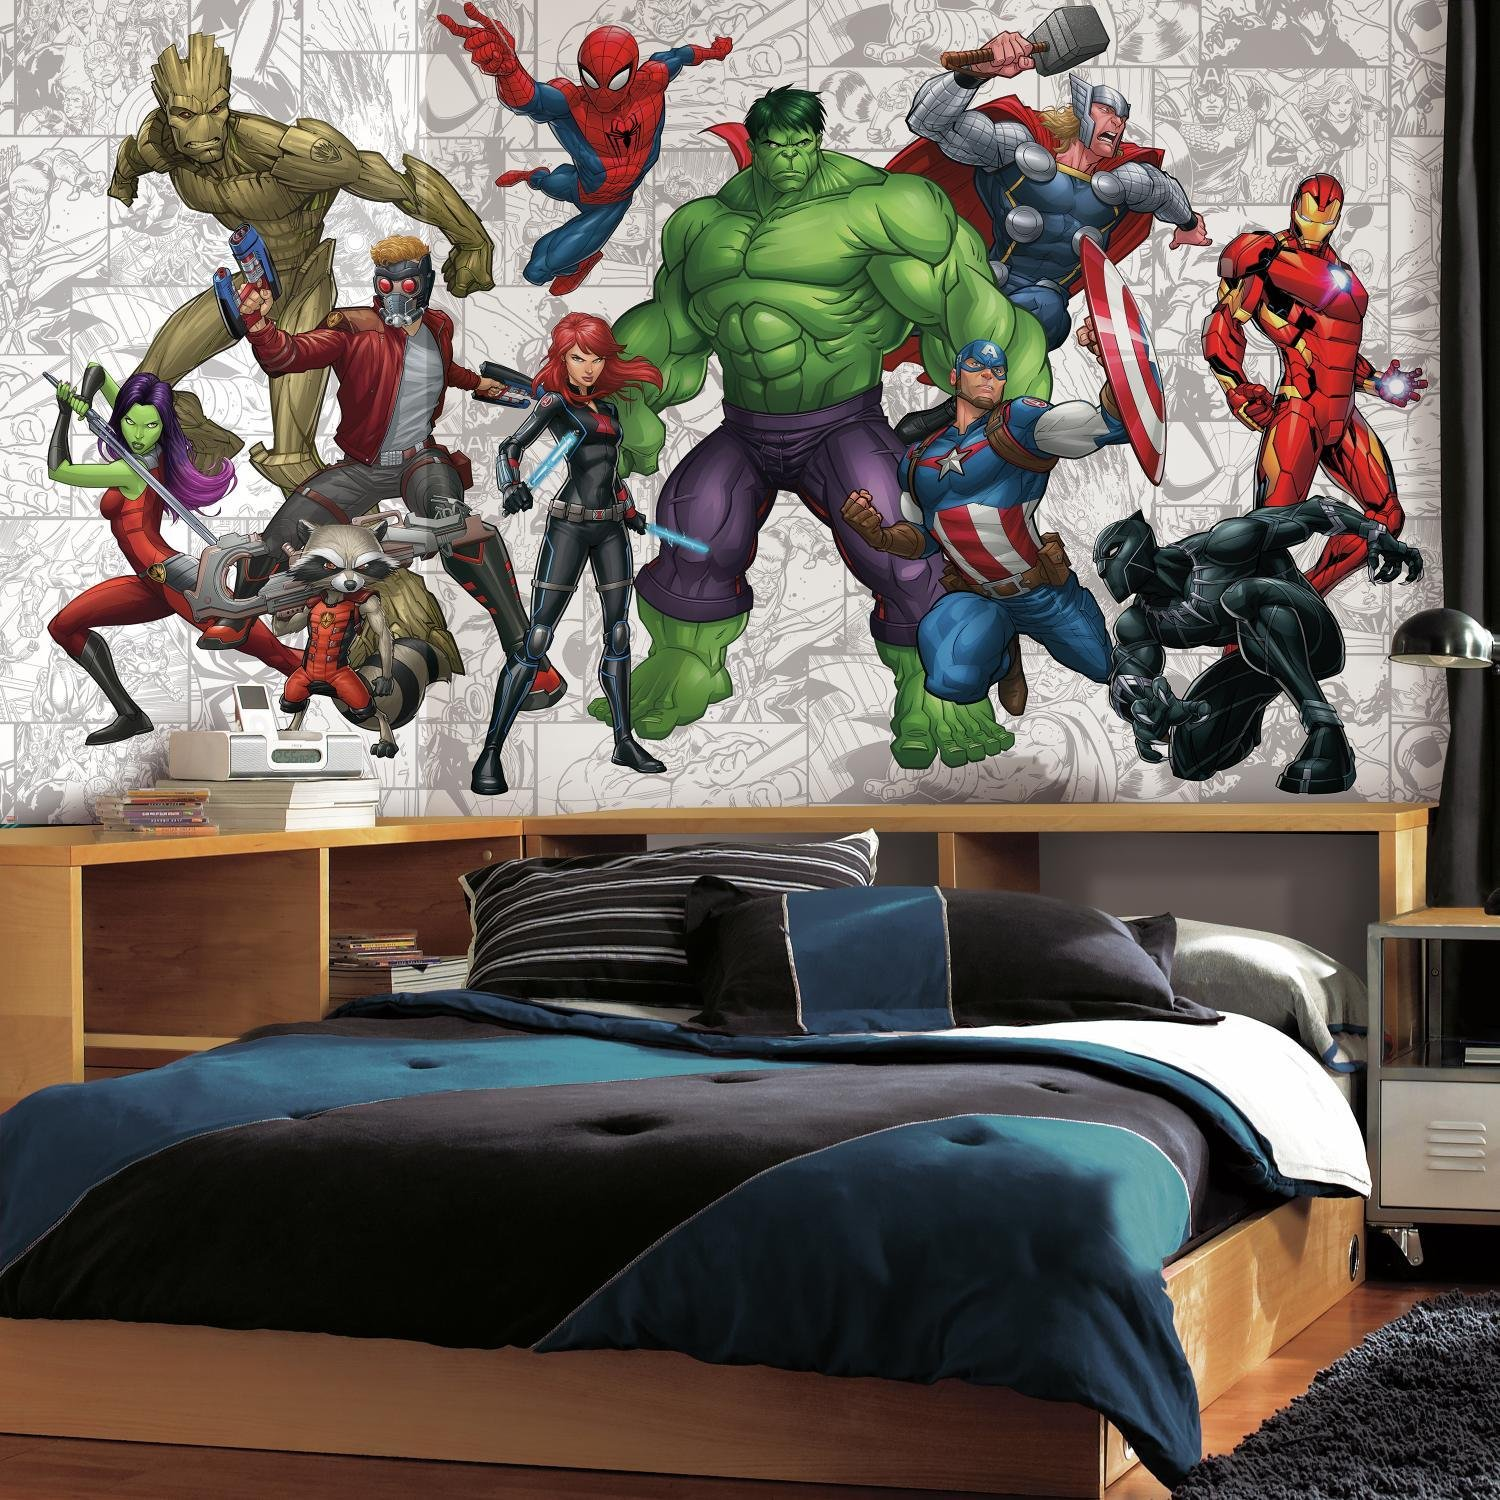 RoomMates Marvel Hero Prepasted, Removable Wall Mural - 6' X 10.5' by RoomMates (Image #1)